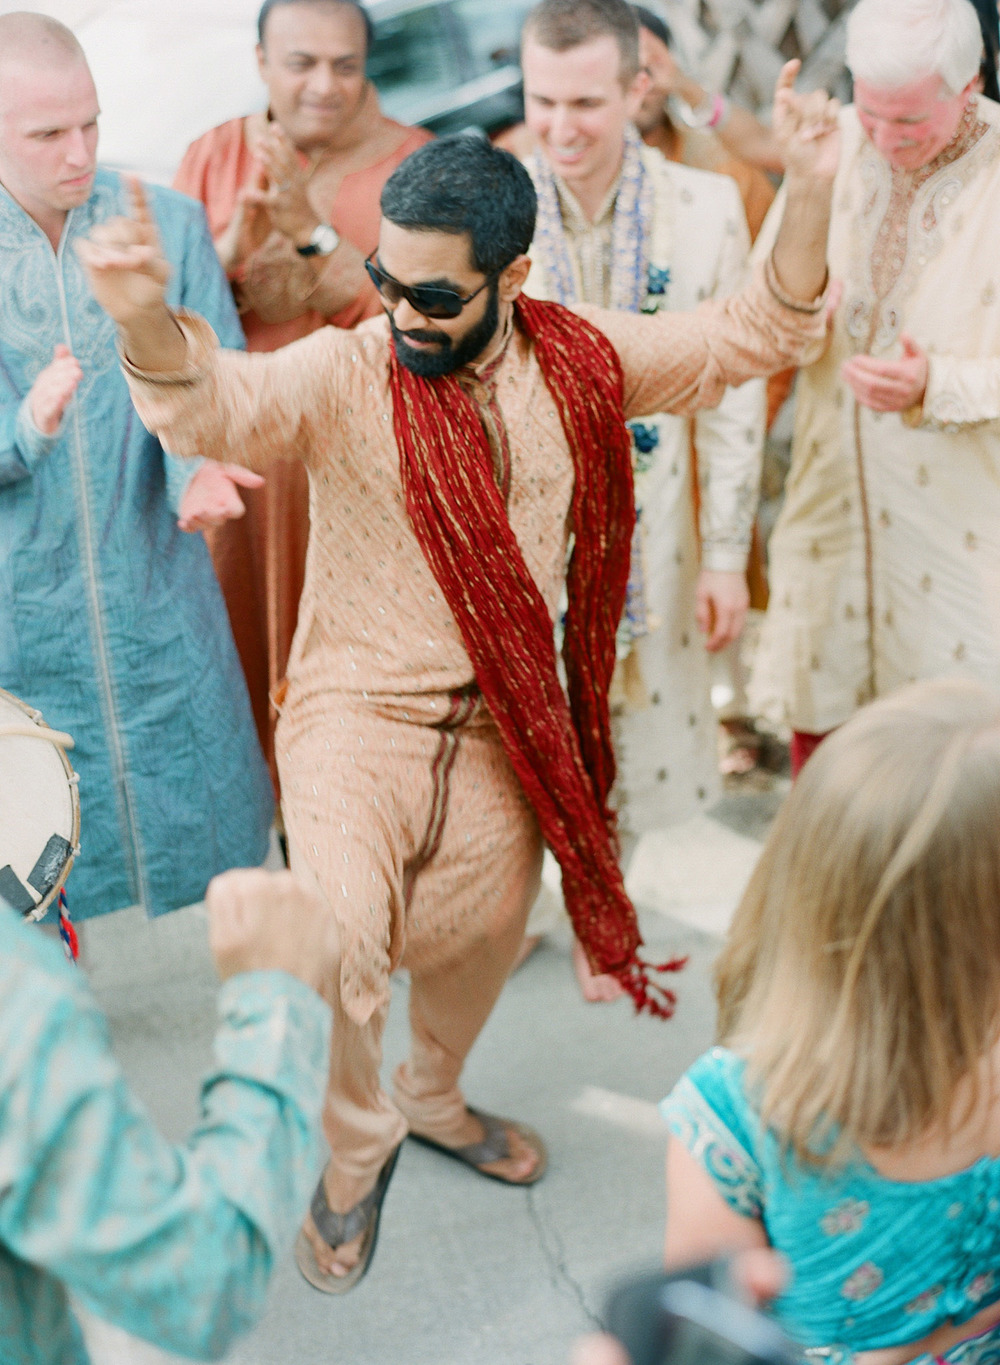 Destination wedding Photographer, Lexia Frank, a top indian wedding photographer - photographs this Luxury Indian Wedding in Florida on film, as she prefers film for it's soft skin tones and vibrant colors perfect for indian weddings in india and worldwide.